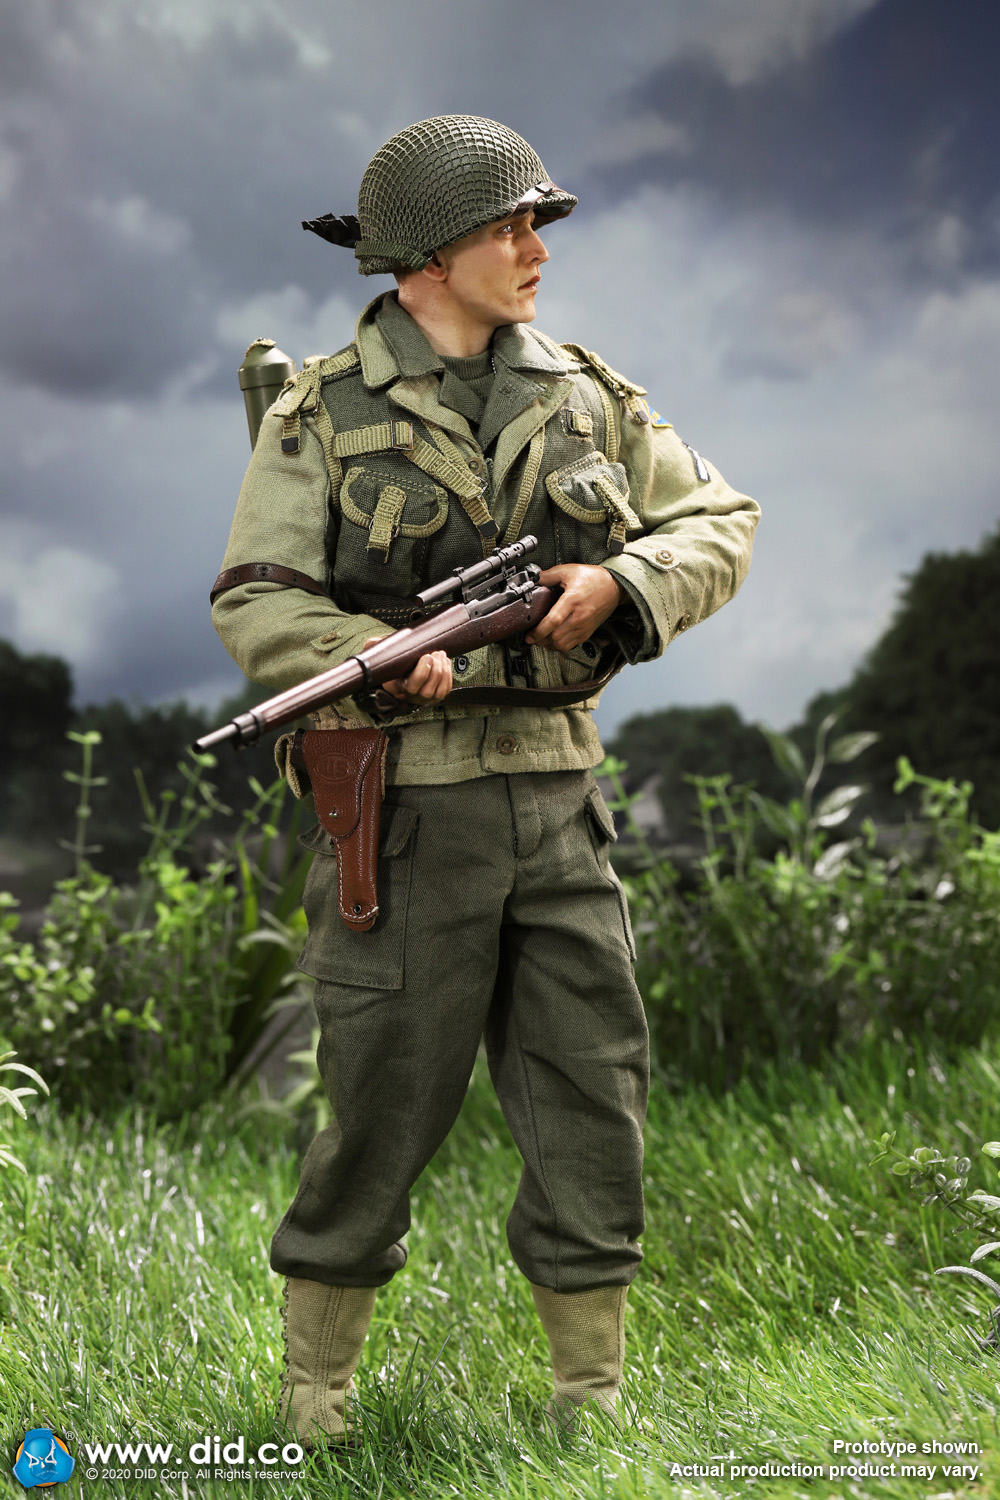 DiD - NEW PRODUCT: DiD: A80144 WWII US 2nd Ranger Battalion Series 4 Private Jackson 33103